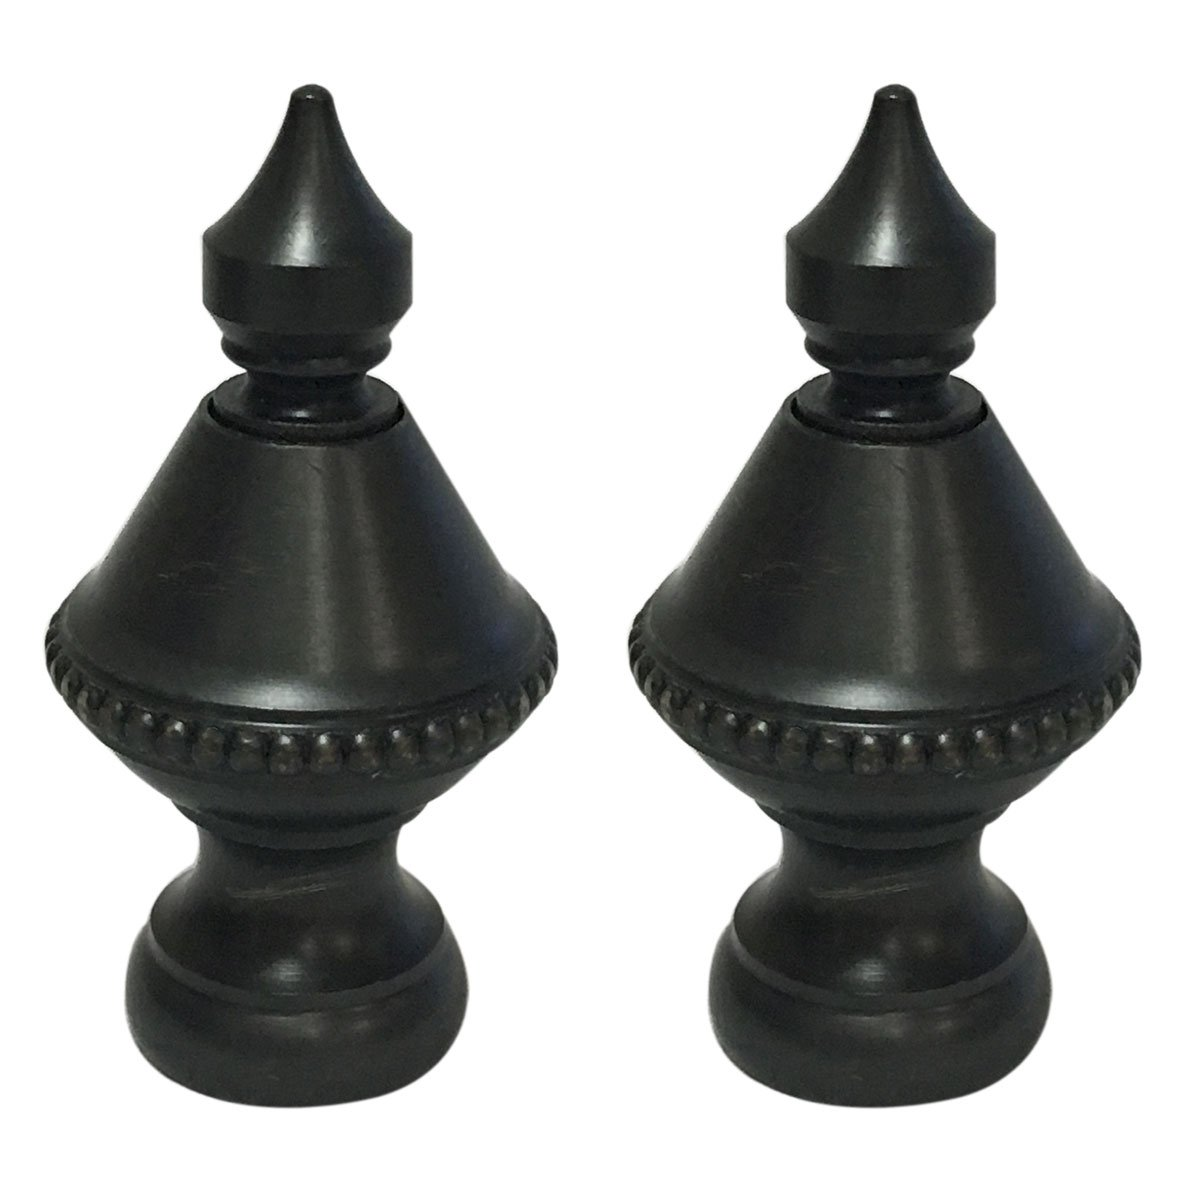 Royal Designs Pointed Urn Lamp Finial for Lamp Shade - Oil Rub Bronze - Set of 2